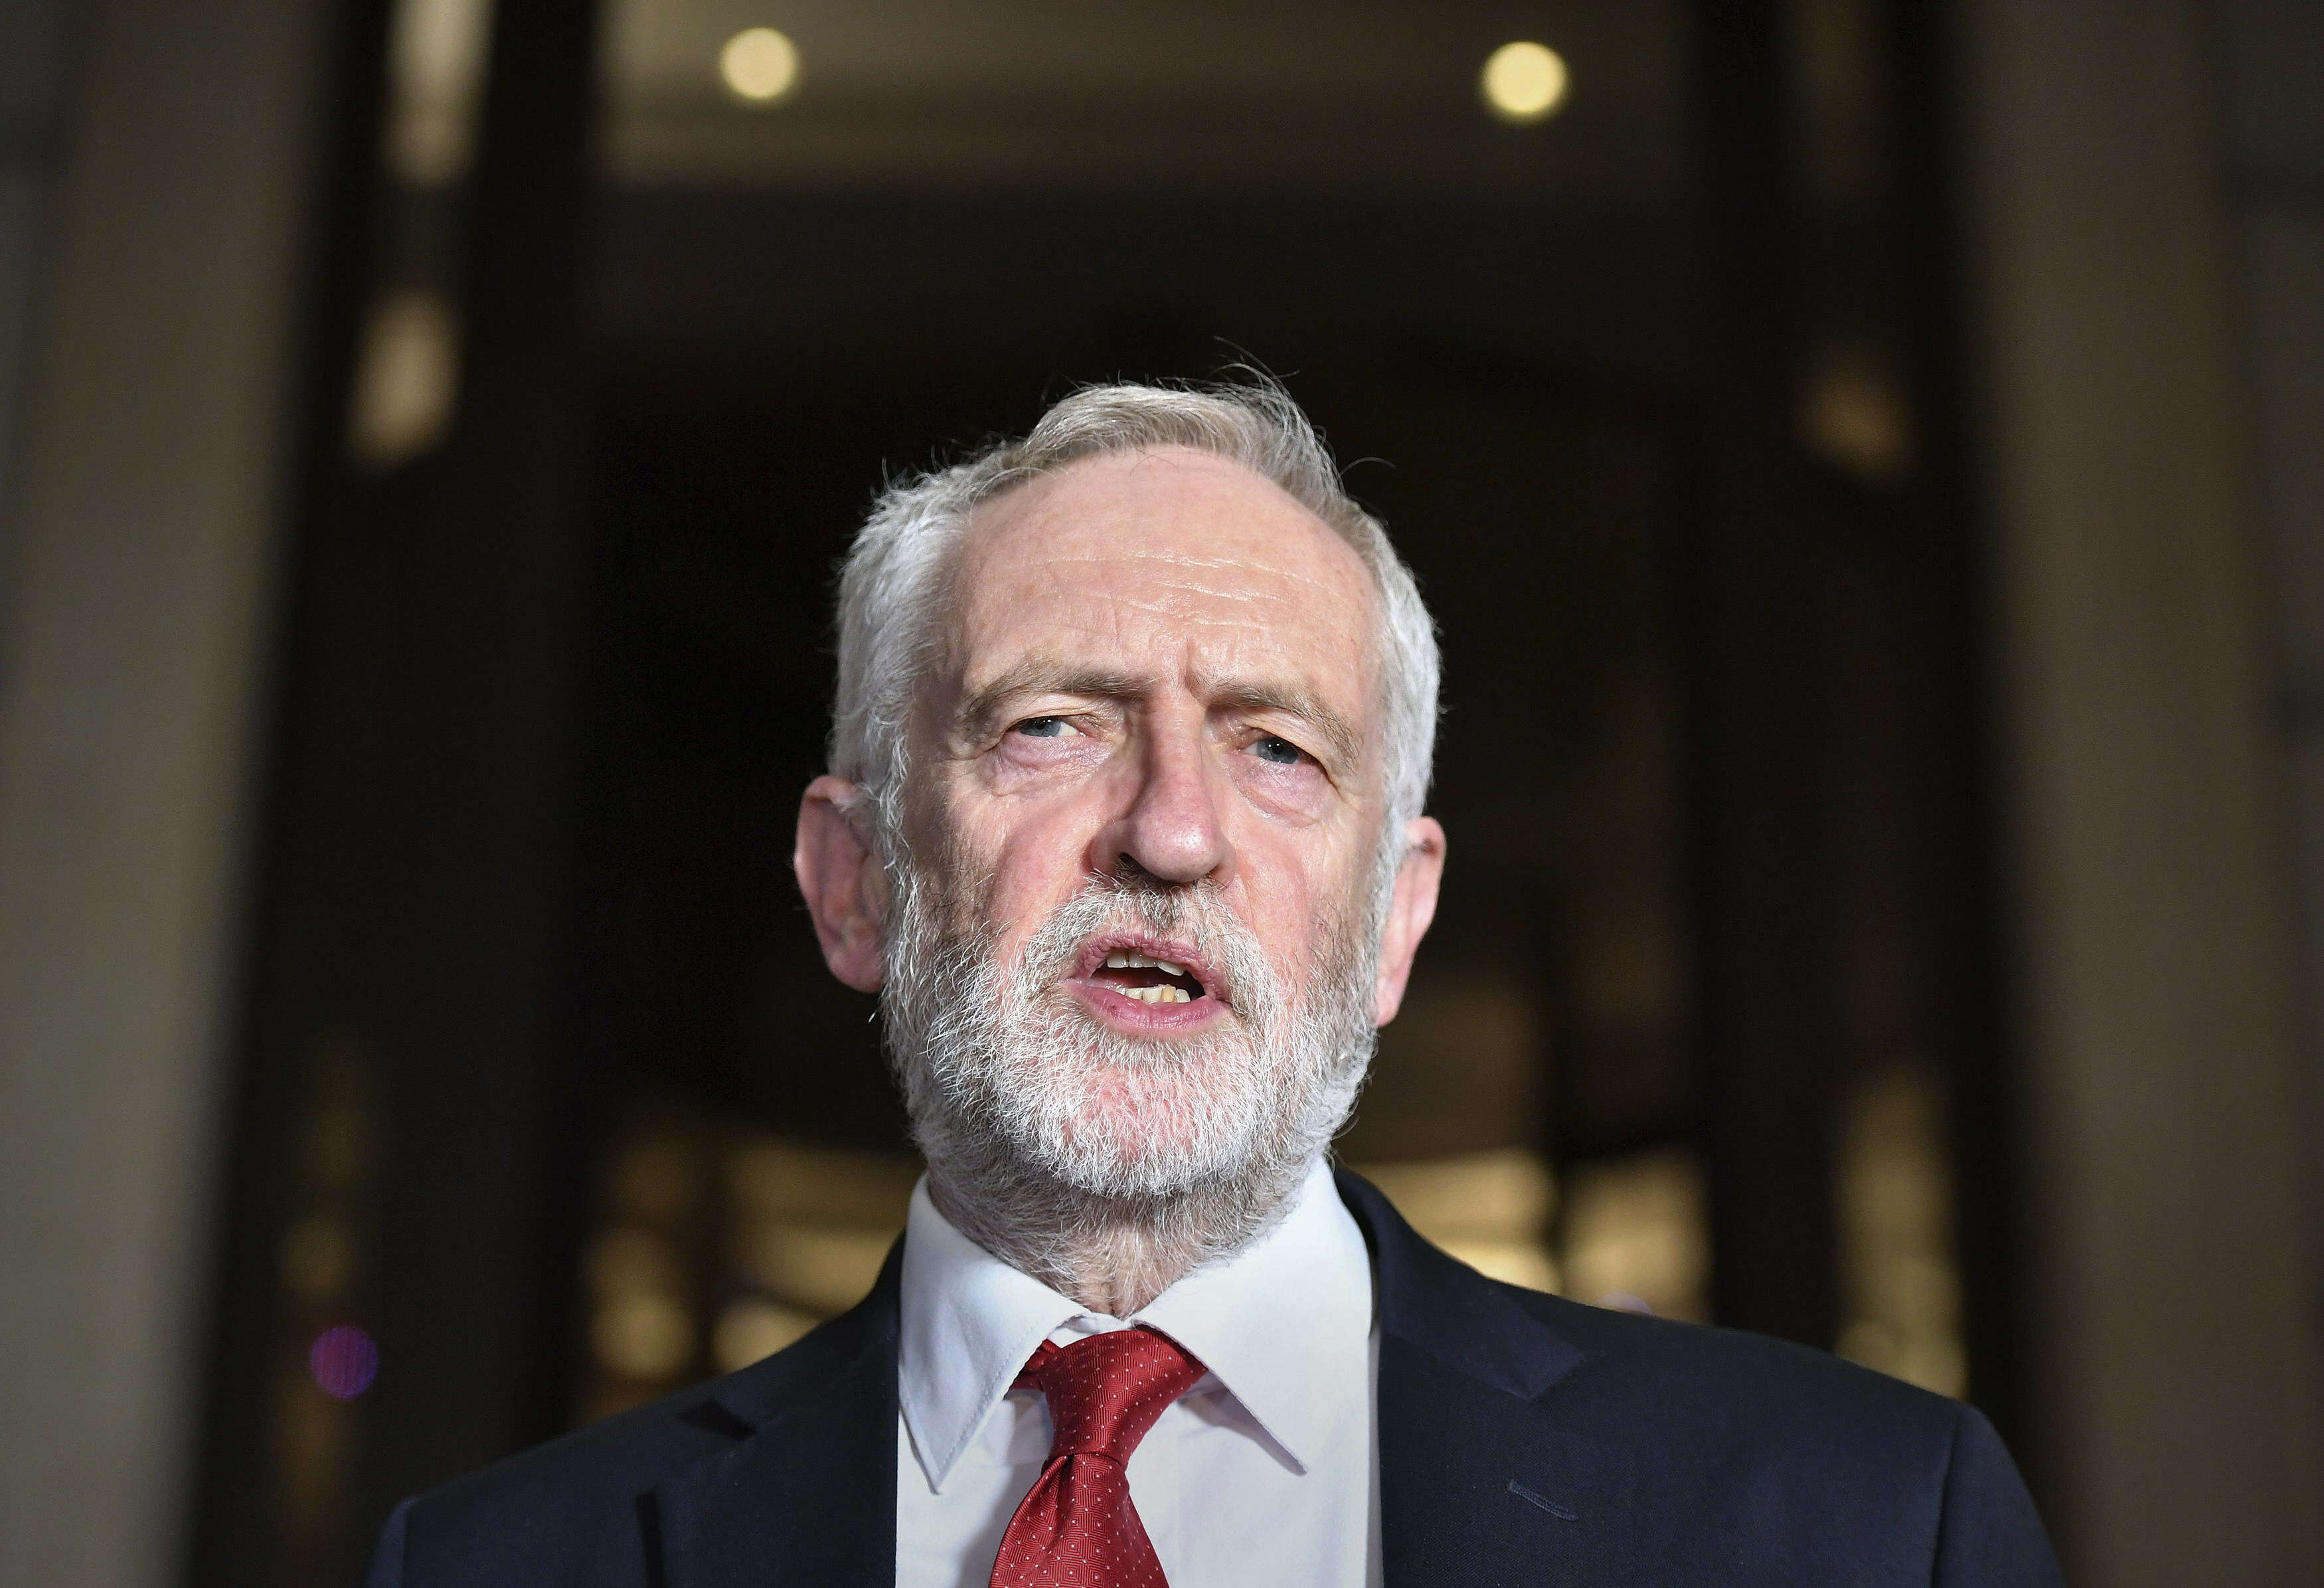 Britain's main opposition Labour Party leader Jeremy Corbyn speaks to the media, in London, Saturday Nov. 16, 2019.